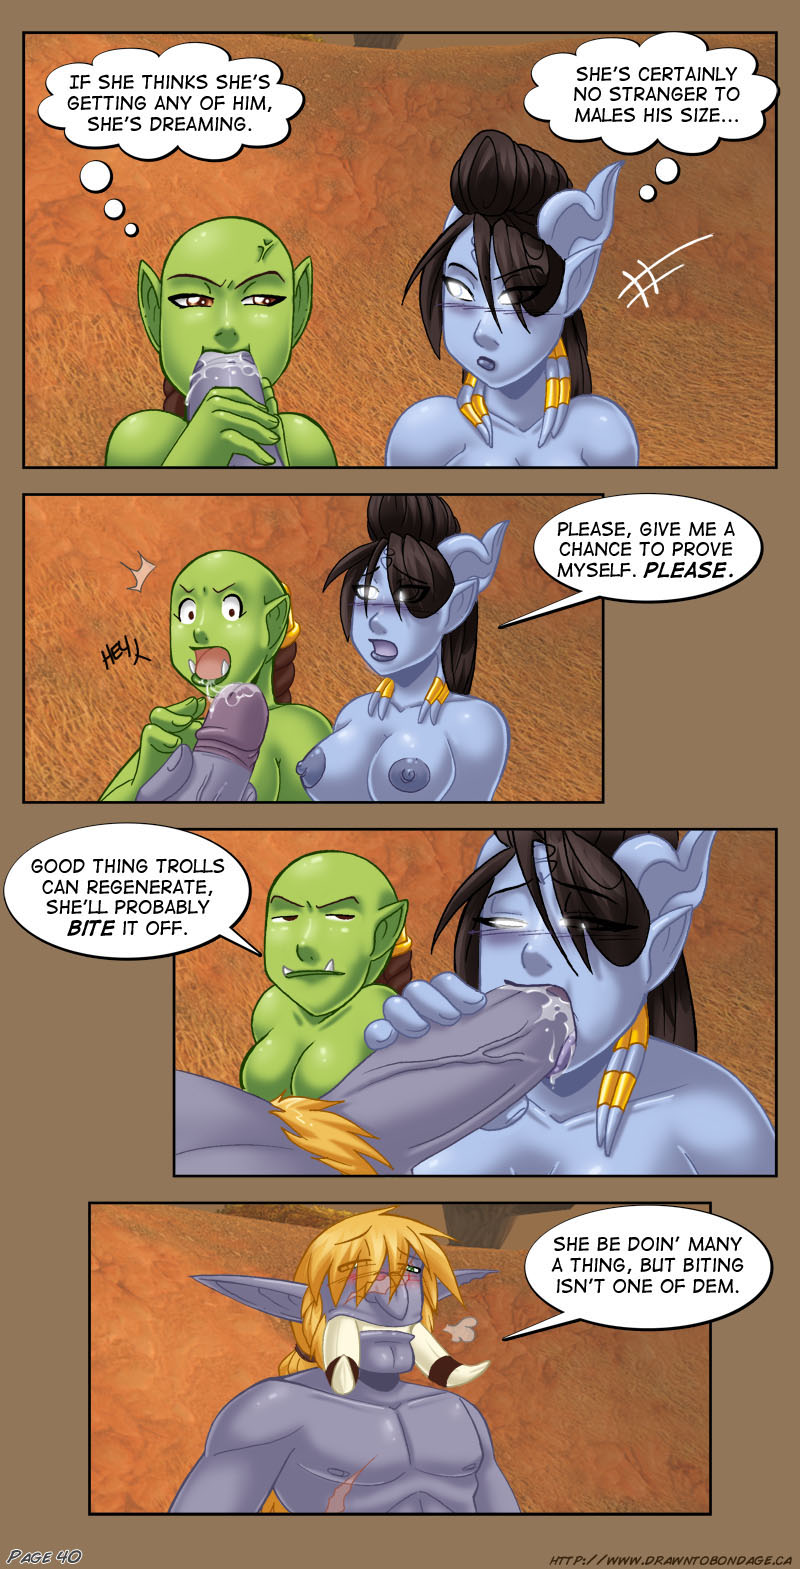 world sex warcraft comics of Maki-chan to now.